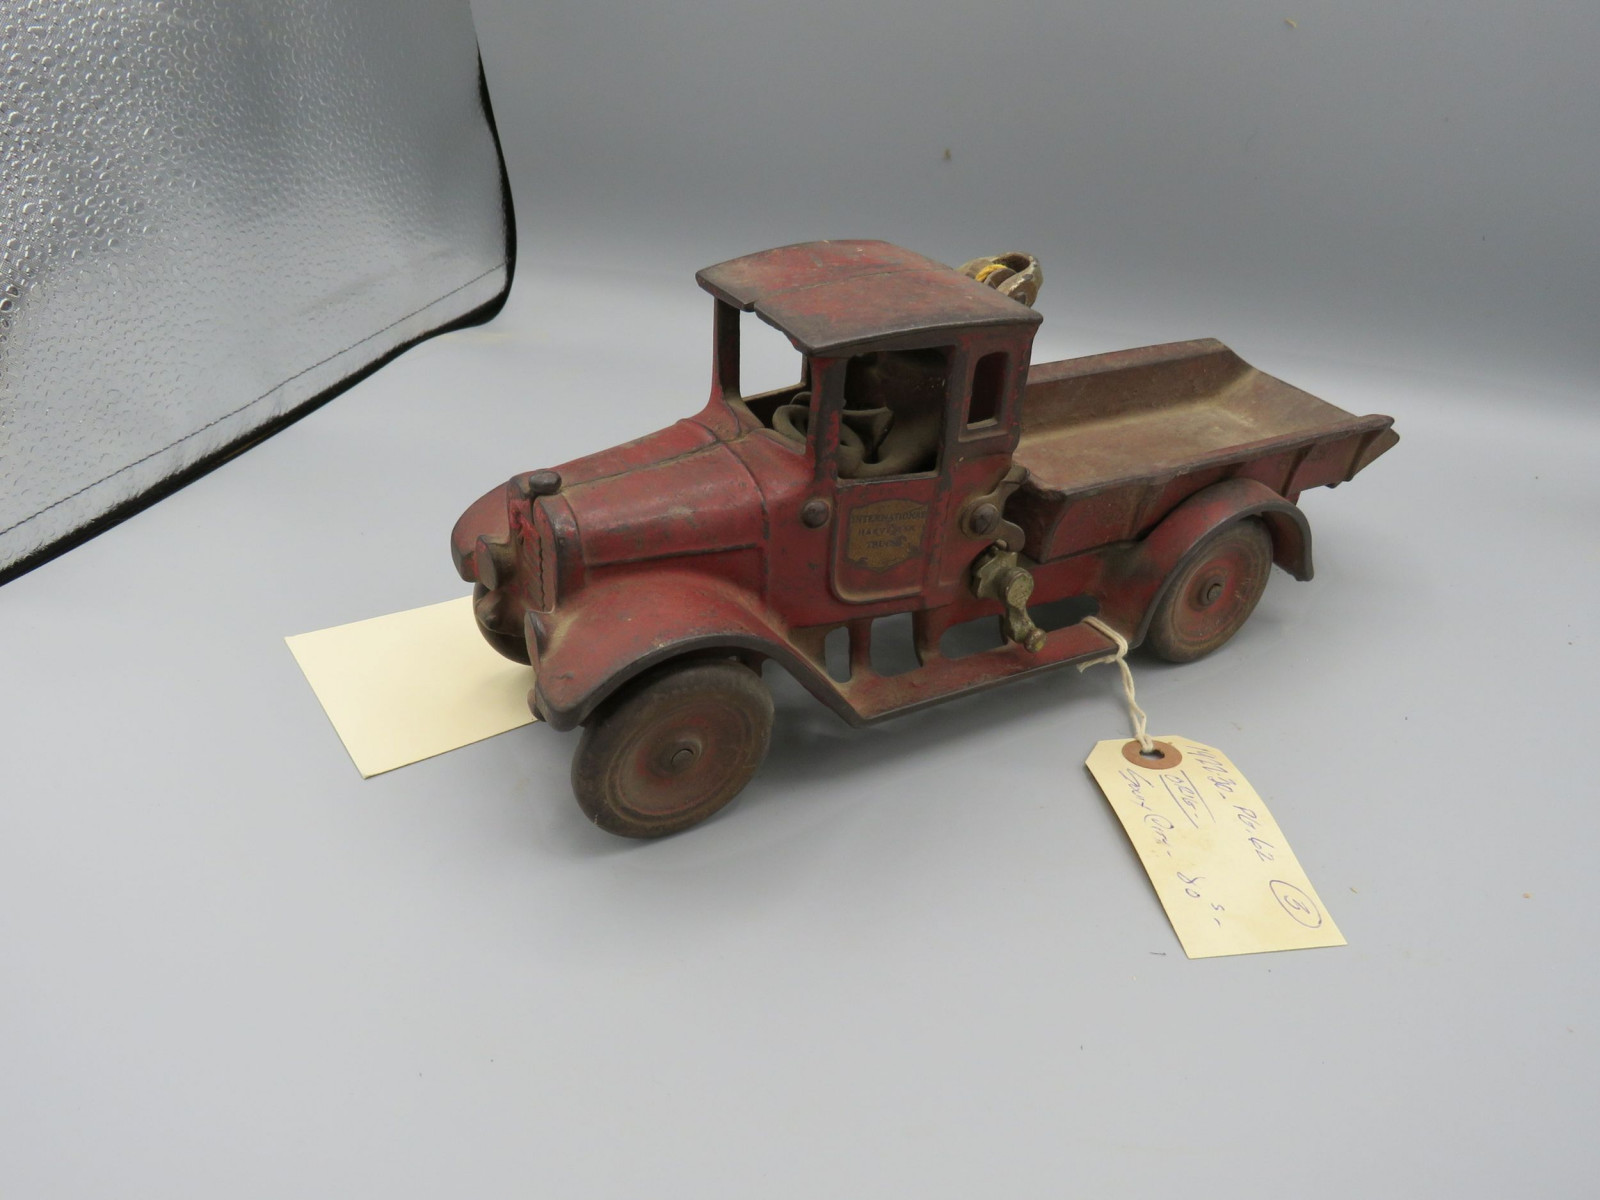 Arcade Cast Iron IH Truck with Man @1922-1930 Approx. 10 inches - Image 2